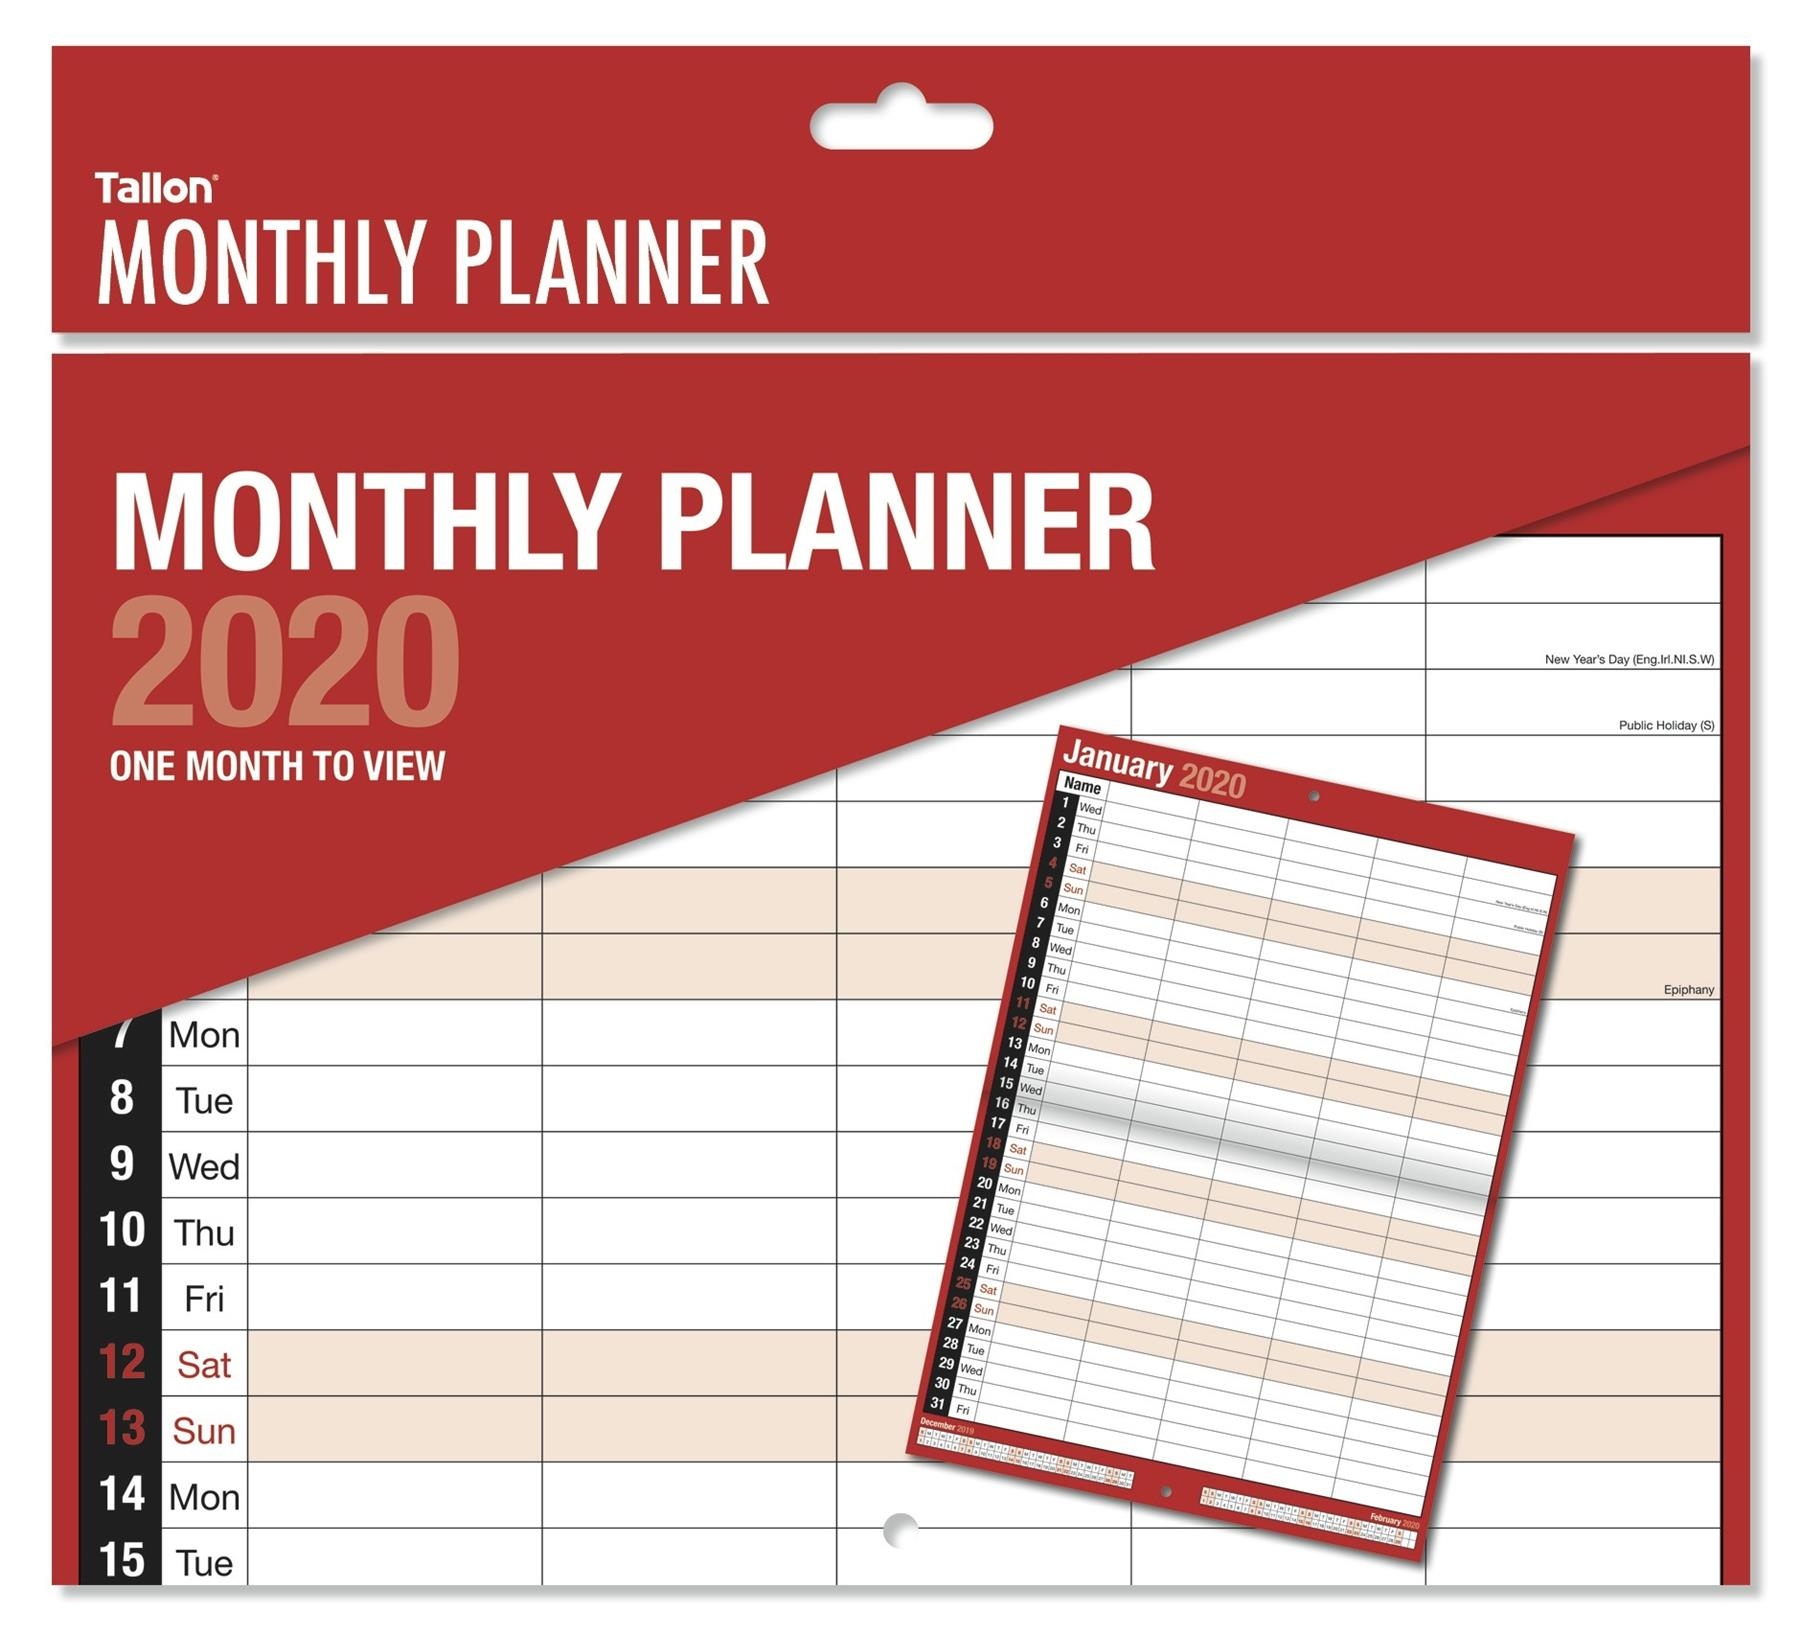 Details About 2020 Monthly Planner Month To View Large Wall Hanging  Calendar 5 Column Tal-3813